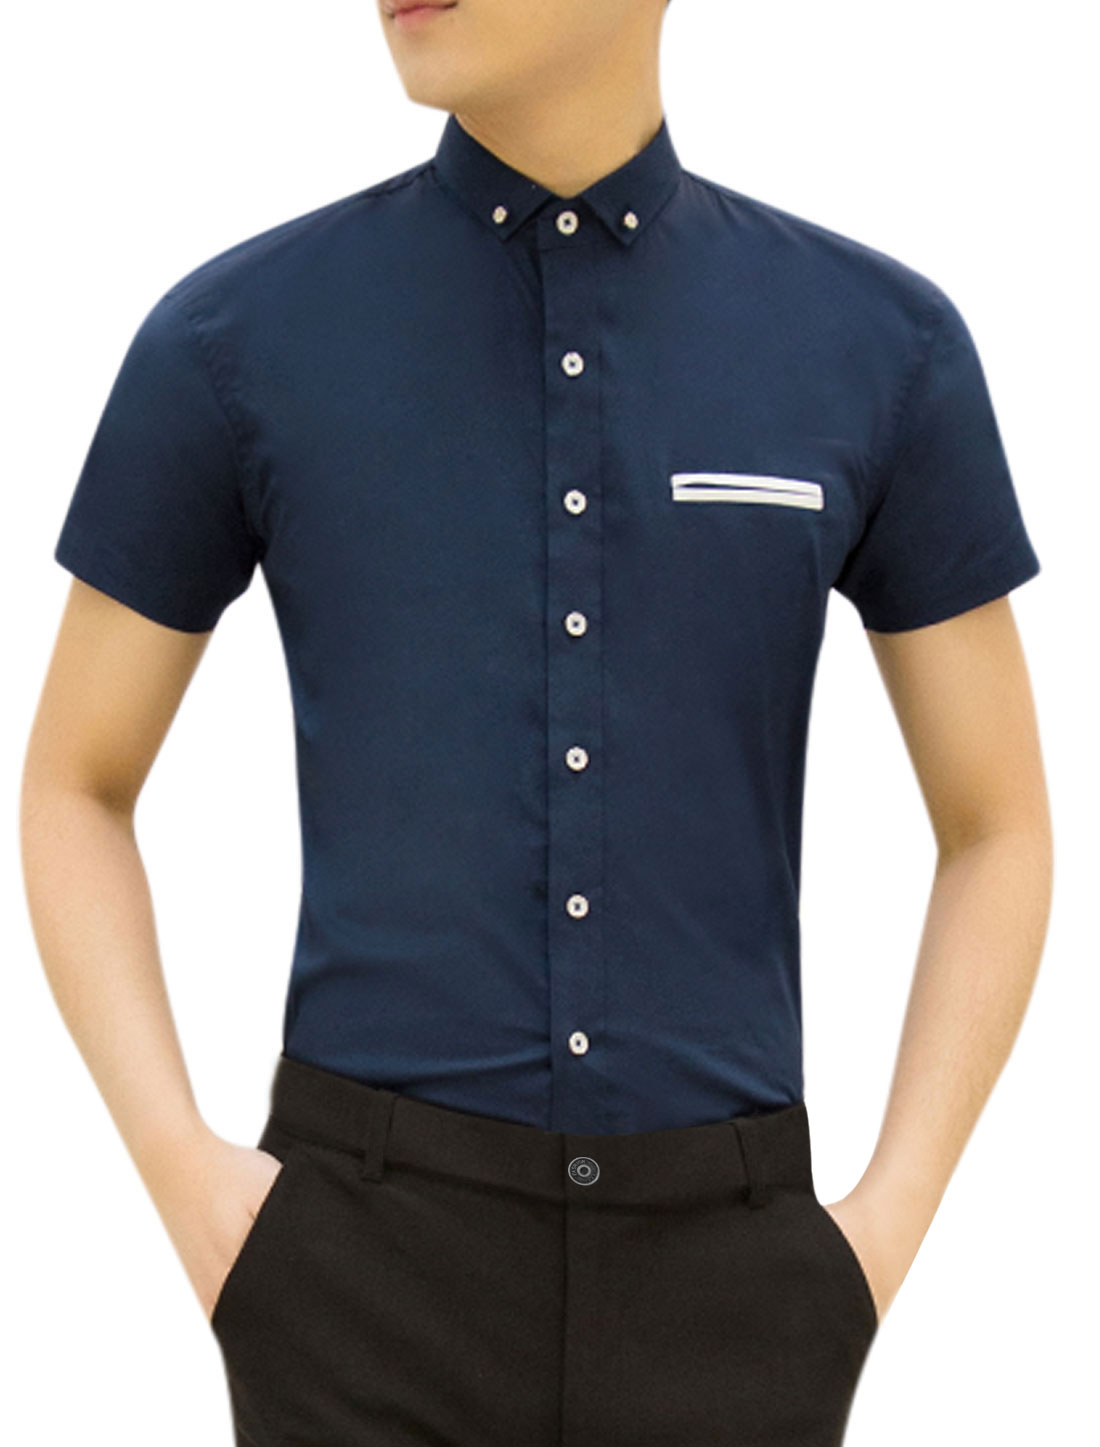 Men Short Sleeves Point Collar Slim Fit Button Up Leisure Top Navy Blue M